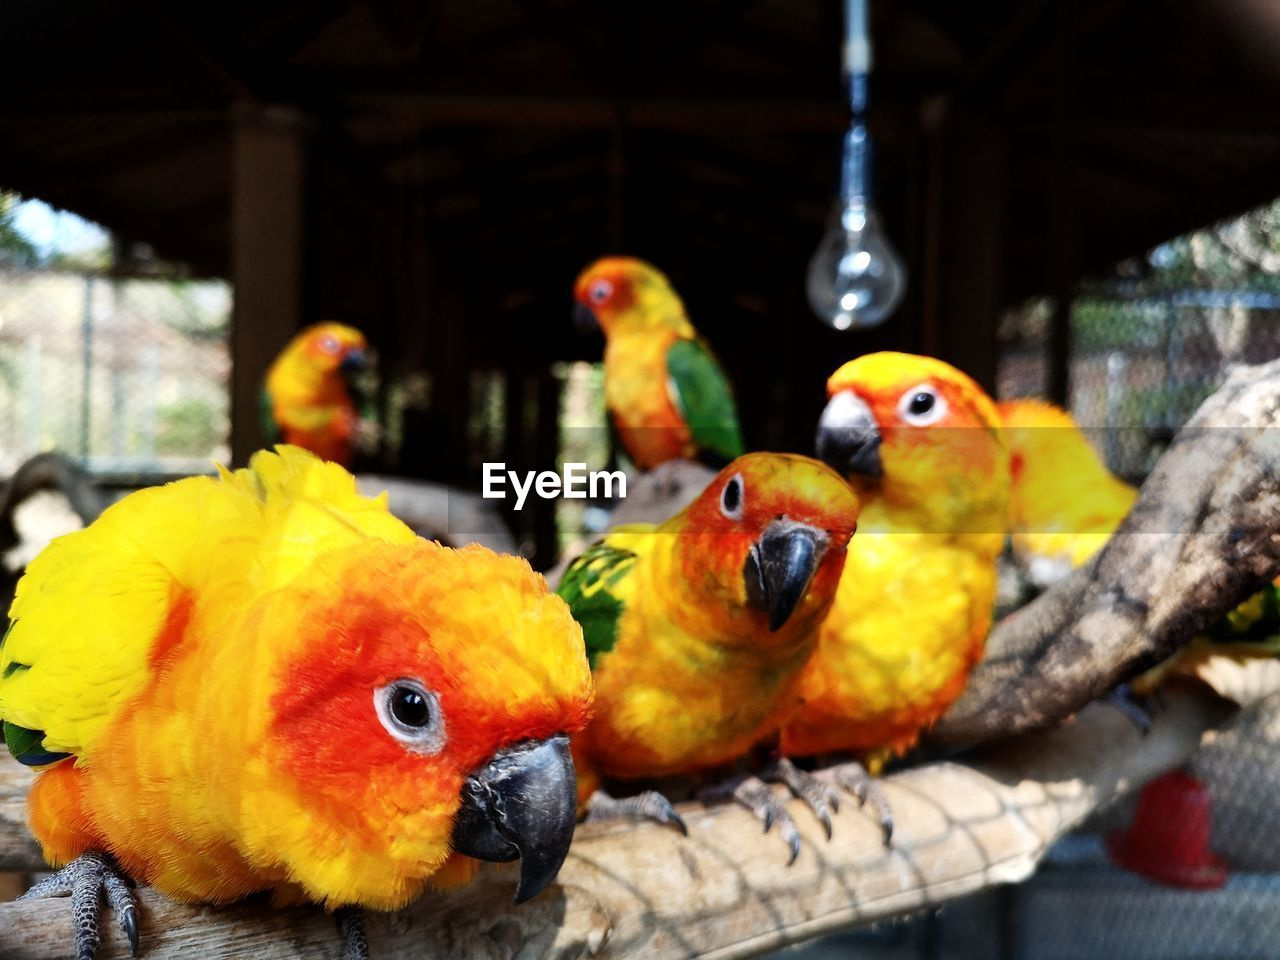 group of animals, bird, animal, animal themes, vertebrate, focus on foreground, animal wildlife, no people, close-up, yellow, parrot, day, animals in the wild, nature, outdoors, animals in captivity, representation, four animals, parakeet, wood - material